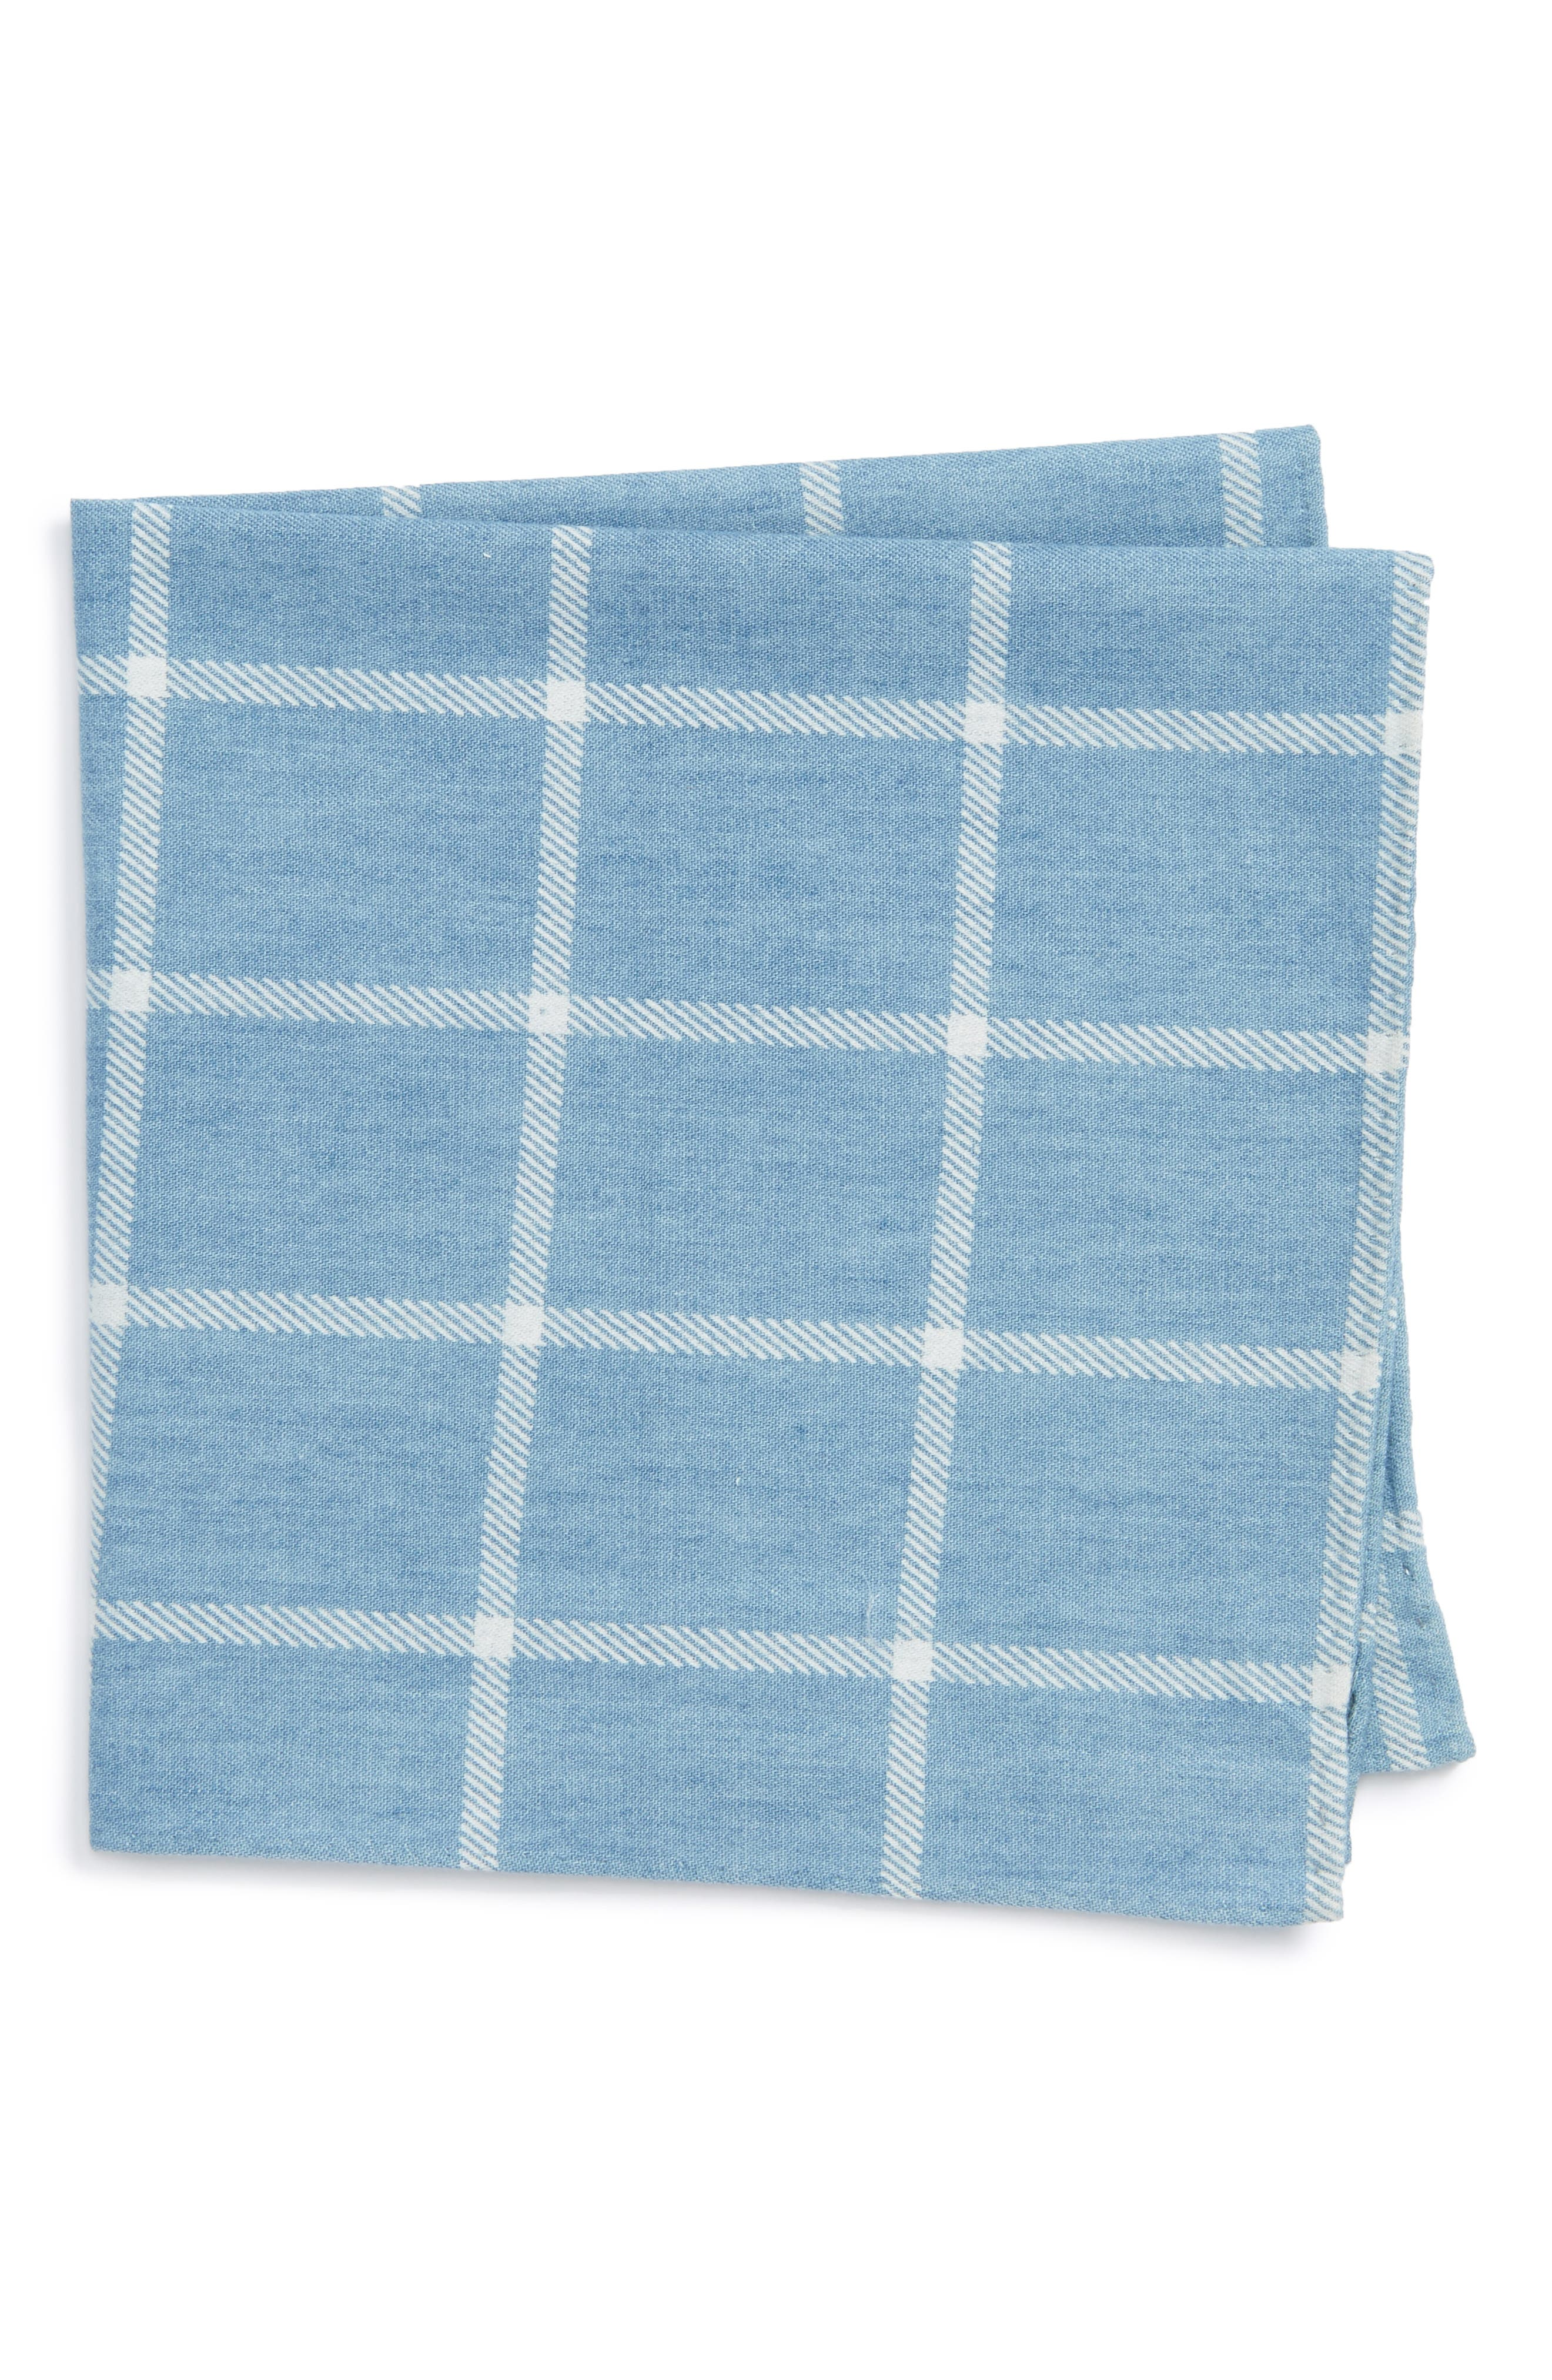 Sergi Check Cotton Pocket Square,                             Main thumbnail 1, color,                             Blue